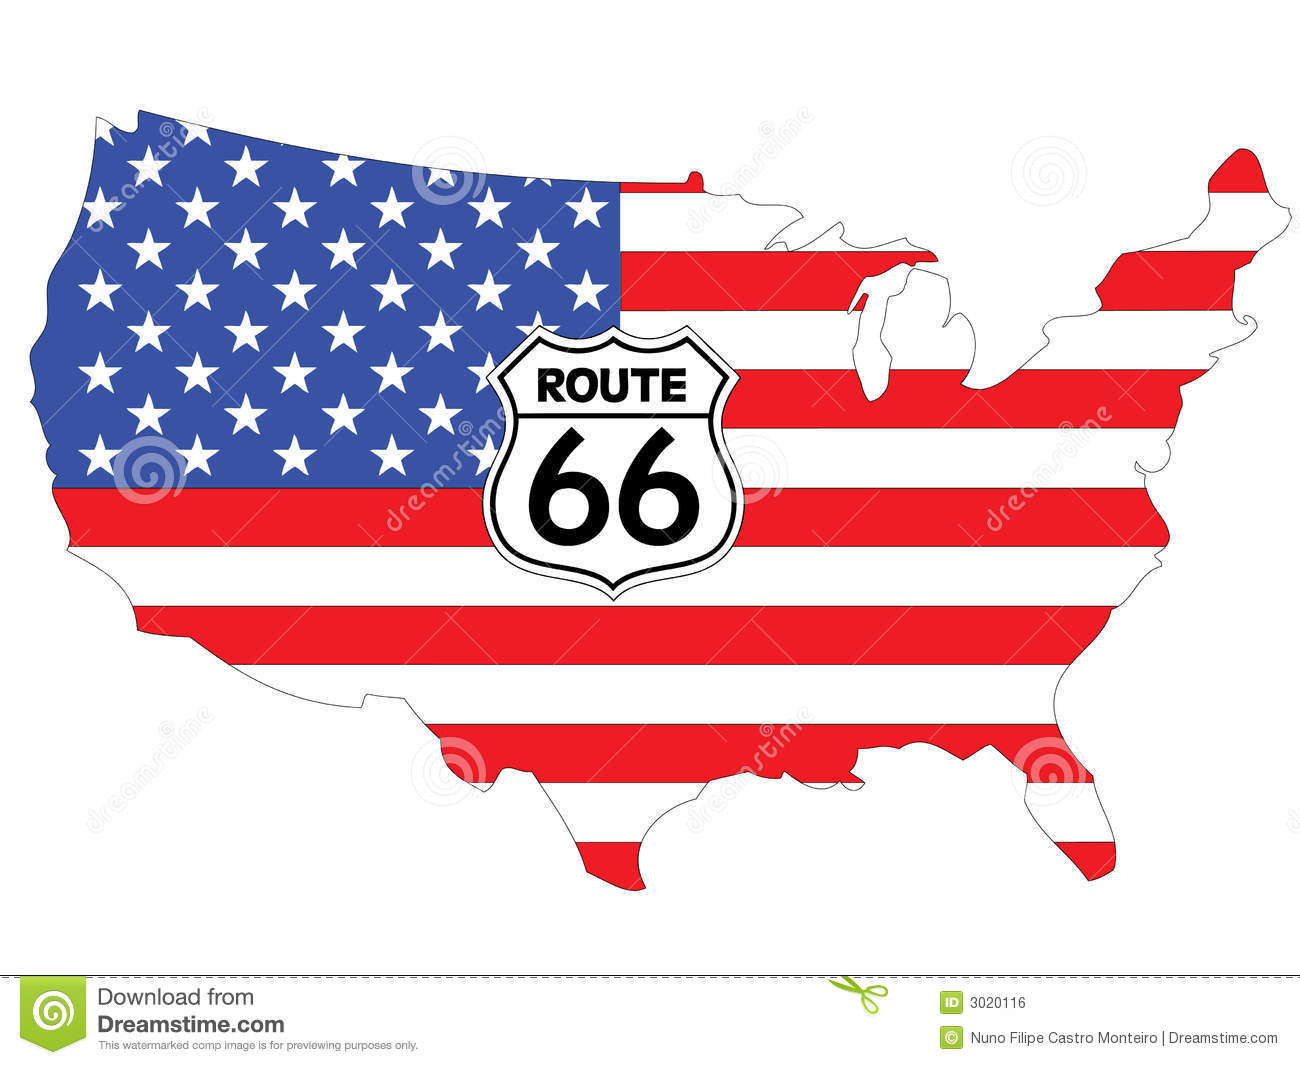 gas prices map usa with Royalty Free Stock Image Usa Flag Route 66 Image3020116 on Obesity also Cenovus Refining Assets A Cushion Against Light Heavy Oil Price Gap further Next Wave Of Natural Gas as well FuelPrices moreover Can North America Harmonize Energy Policy.